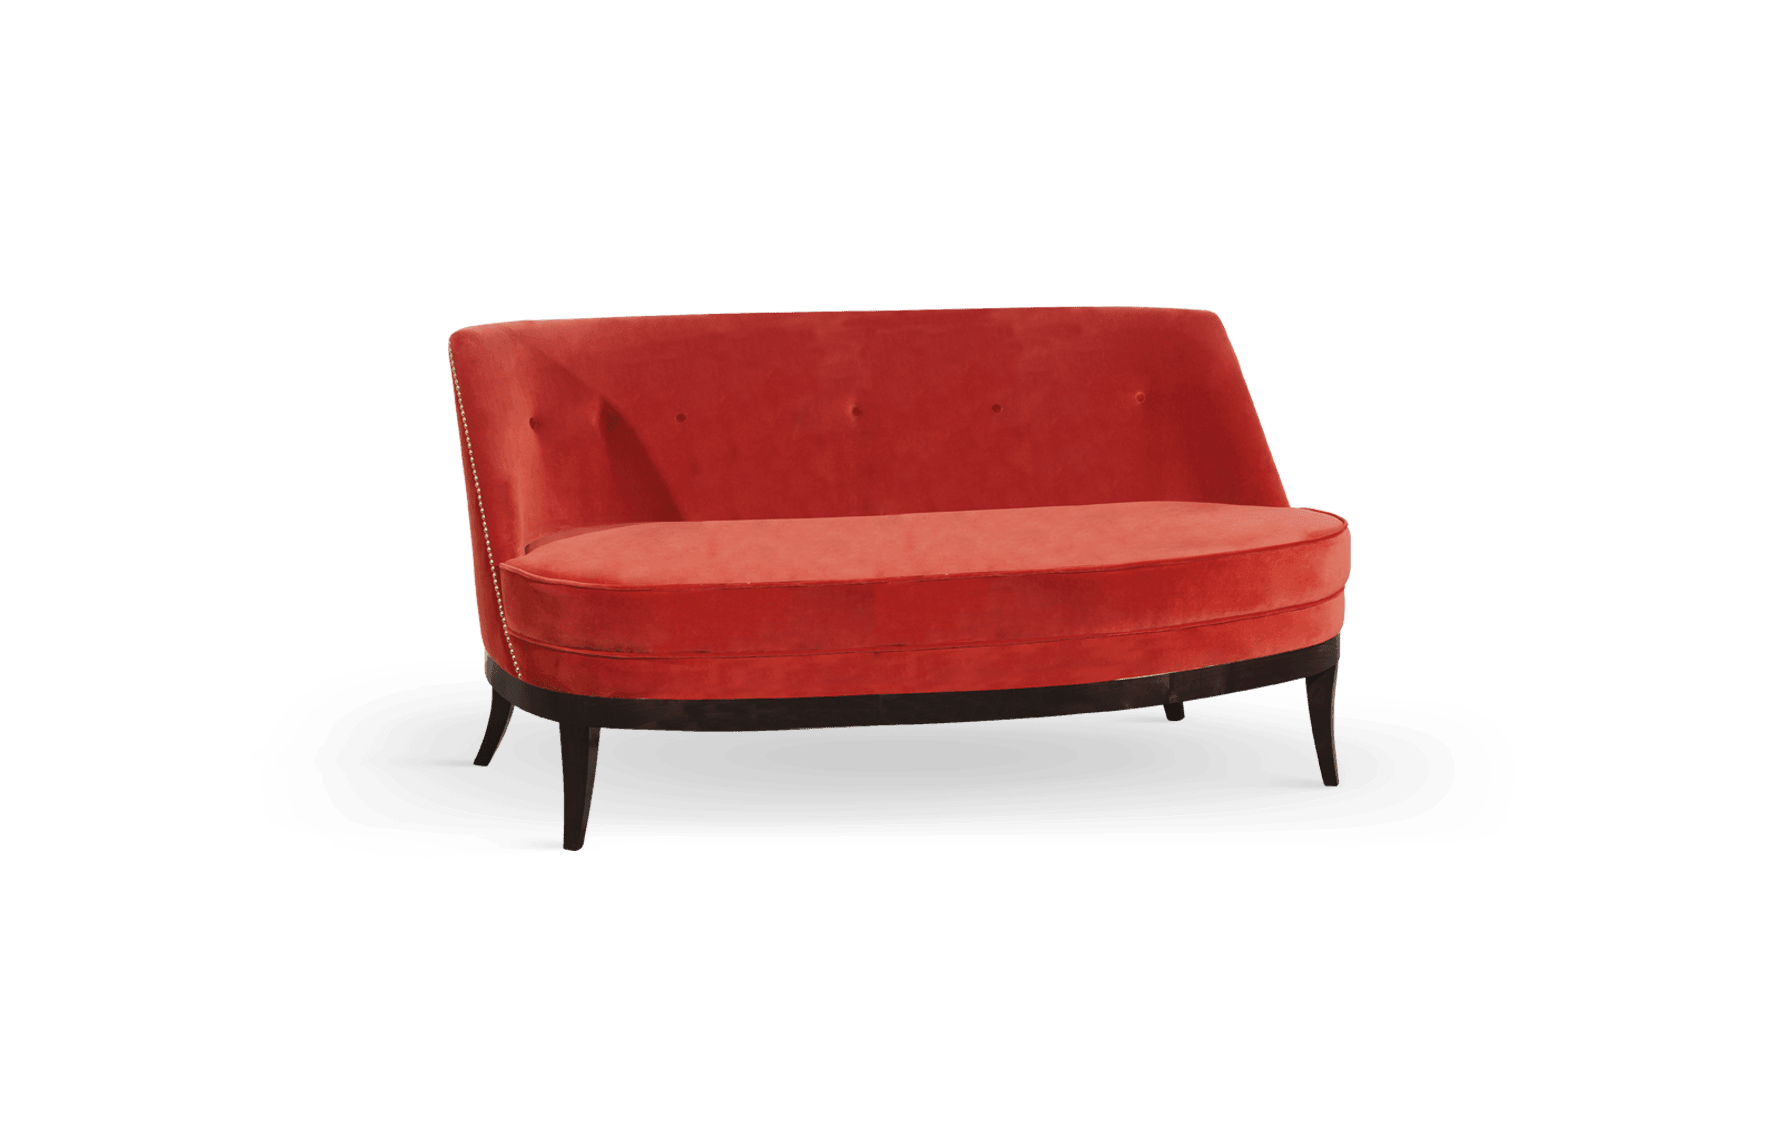 Marilyn Mid-Century Modern Twin Seat in living coral cotton velvet